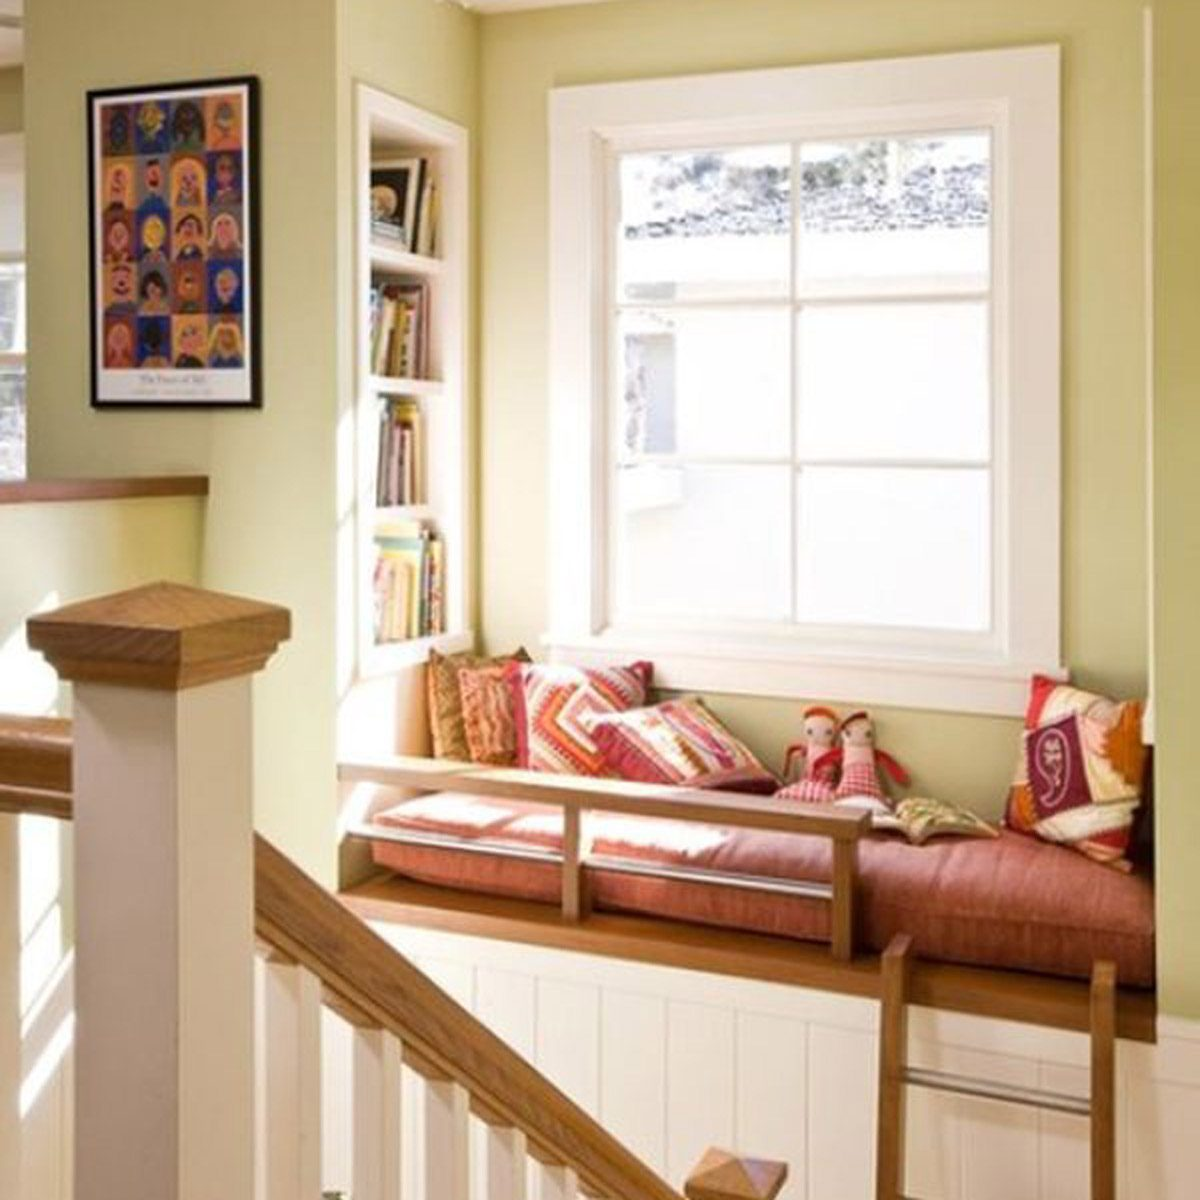 10 reading nook ideas  u2014 the family handyman